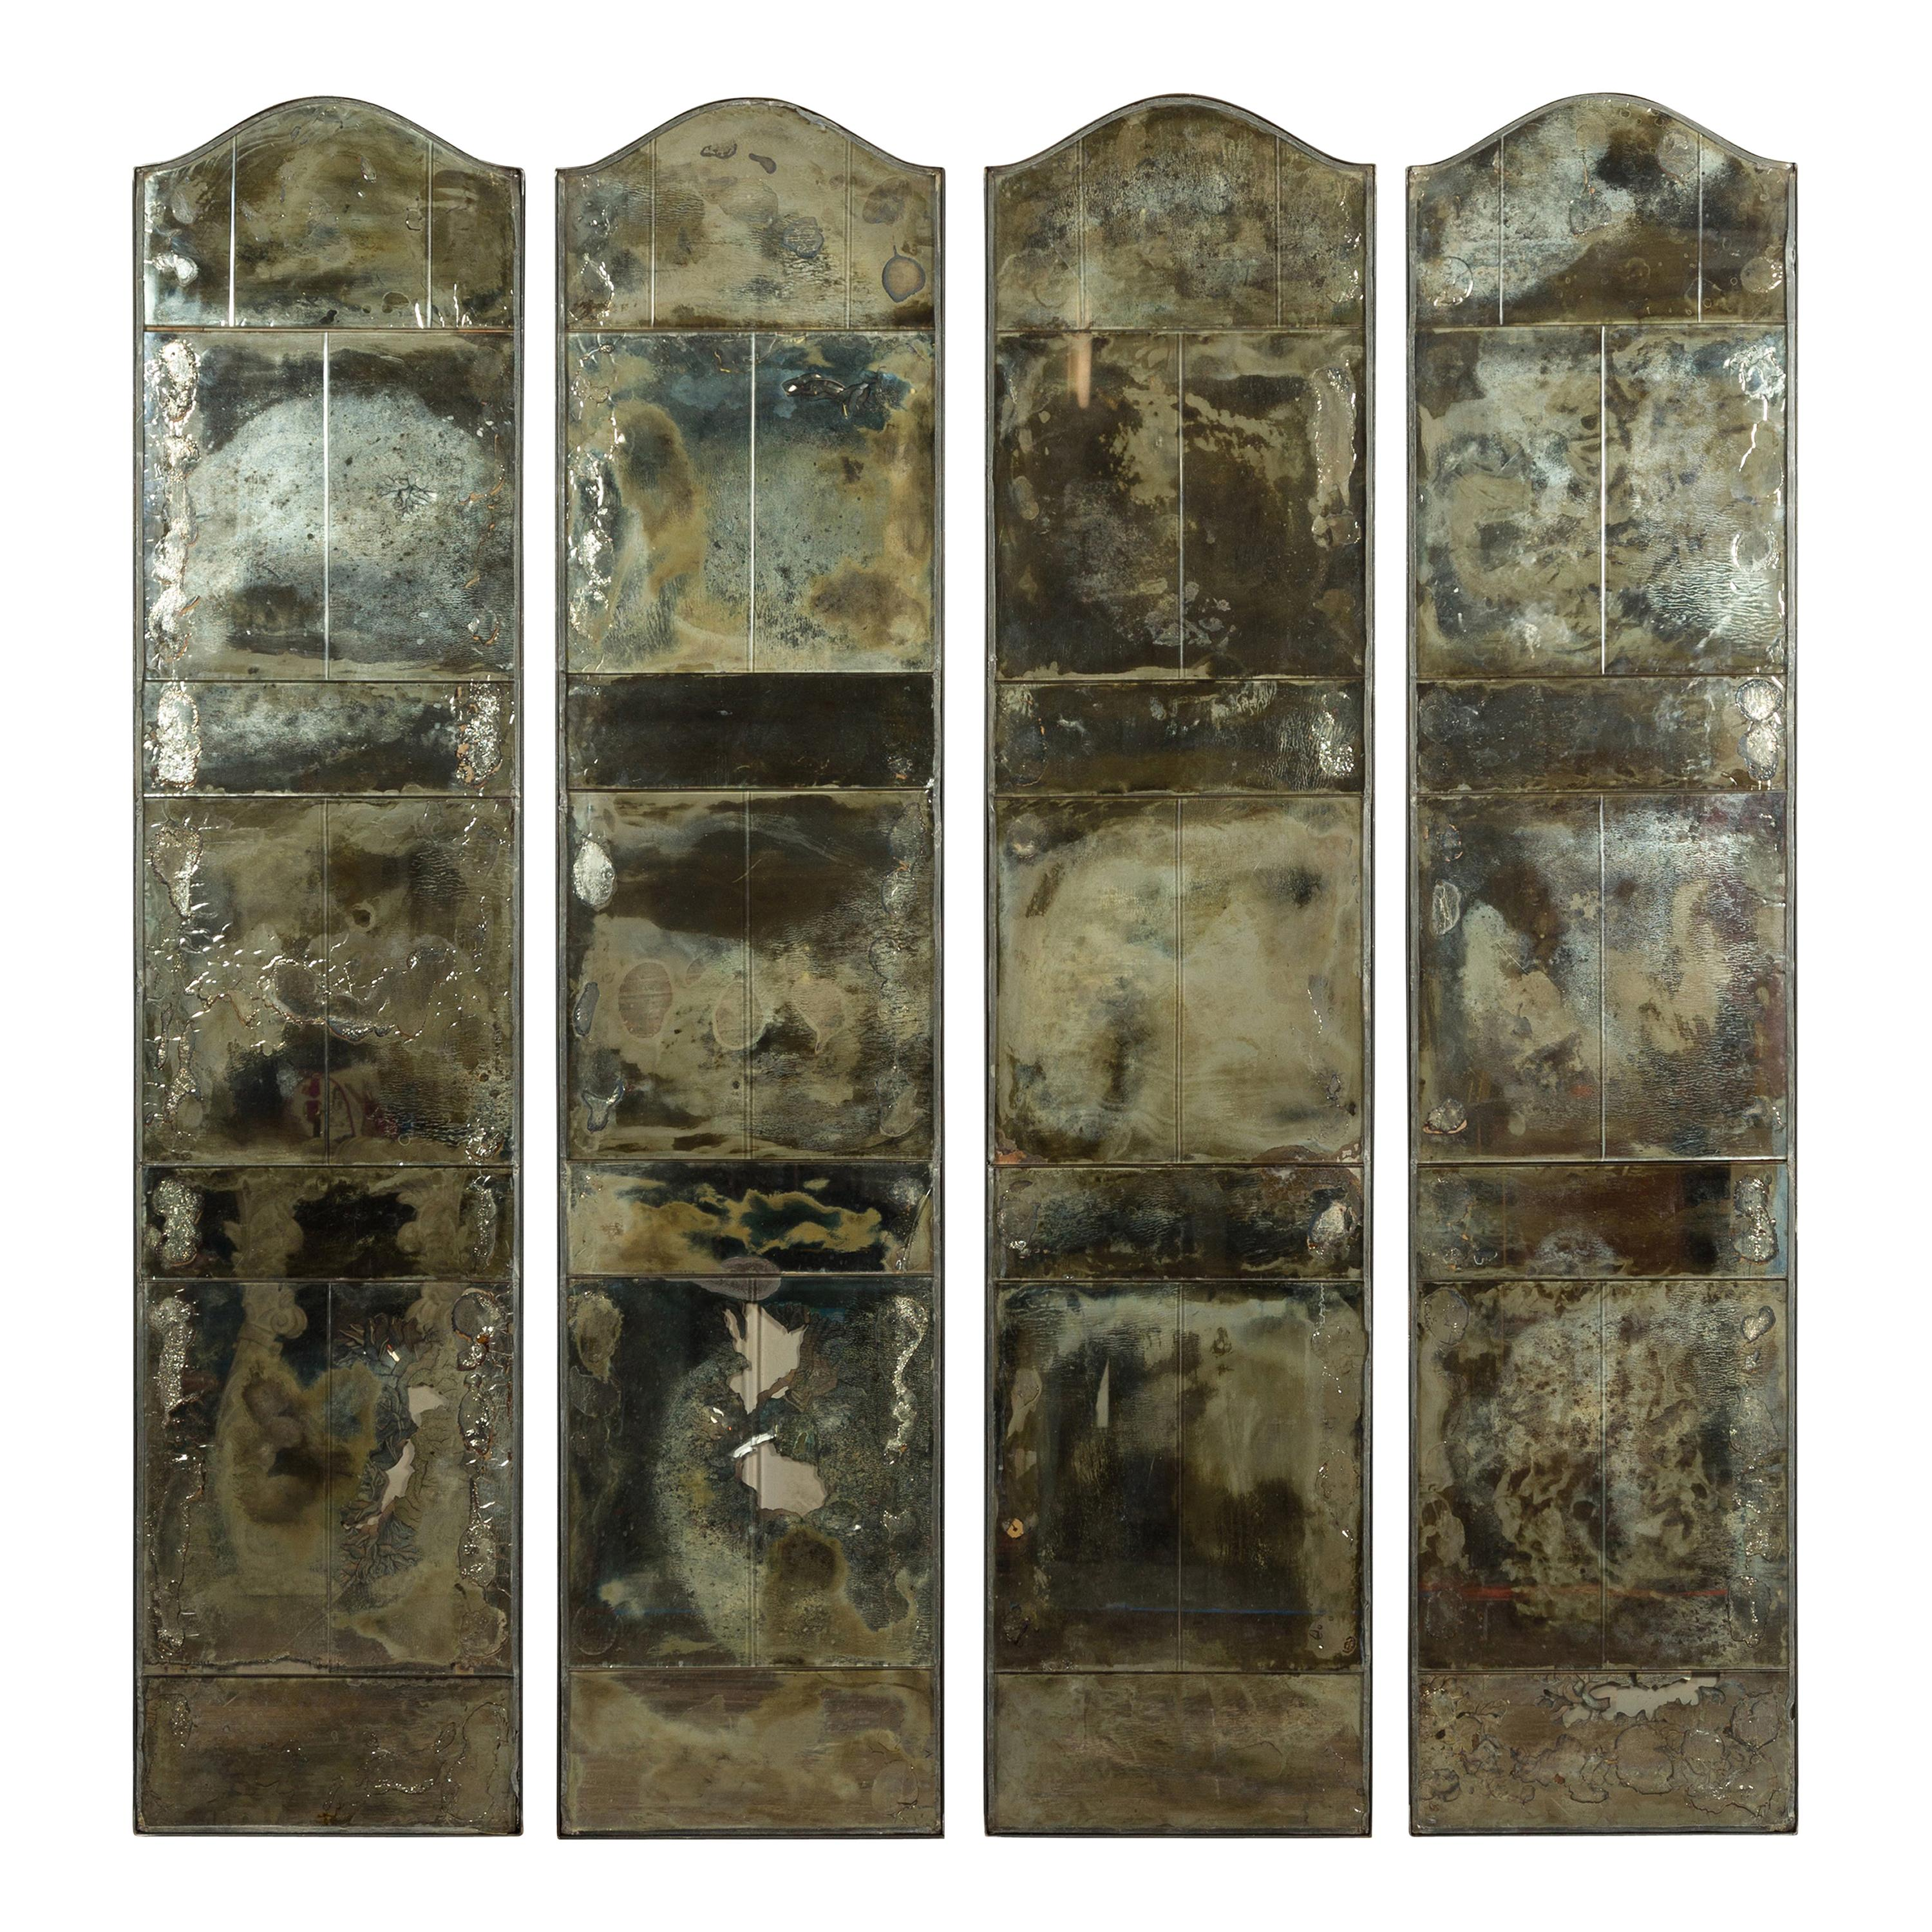 Set of Four French Midcentury Mirrored Screens with Distressed Appearance